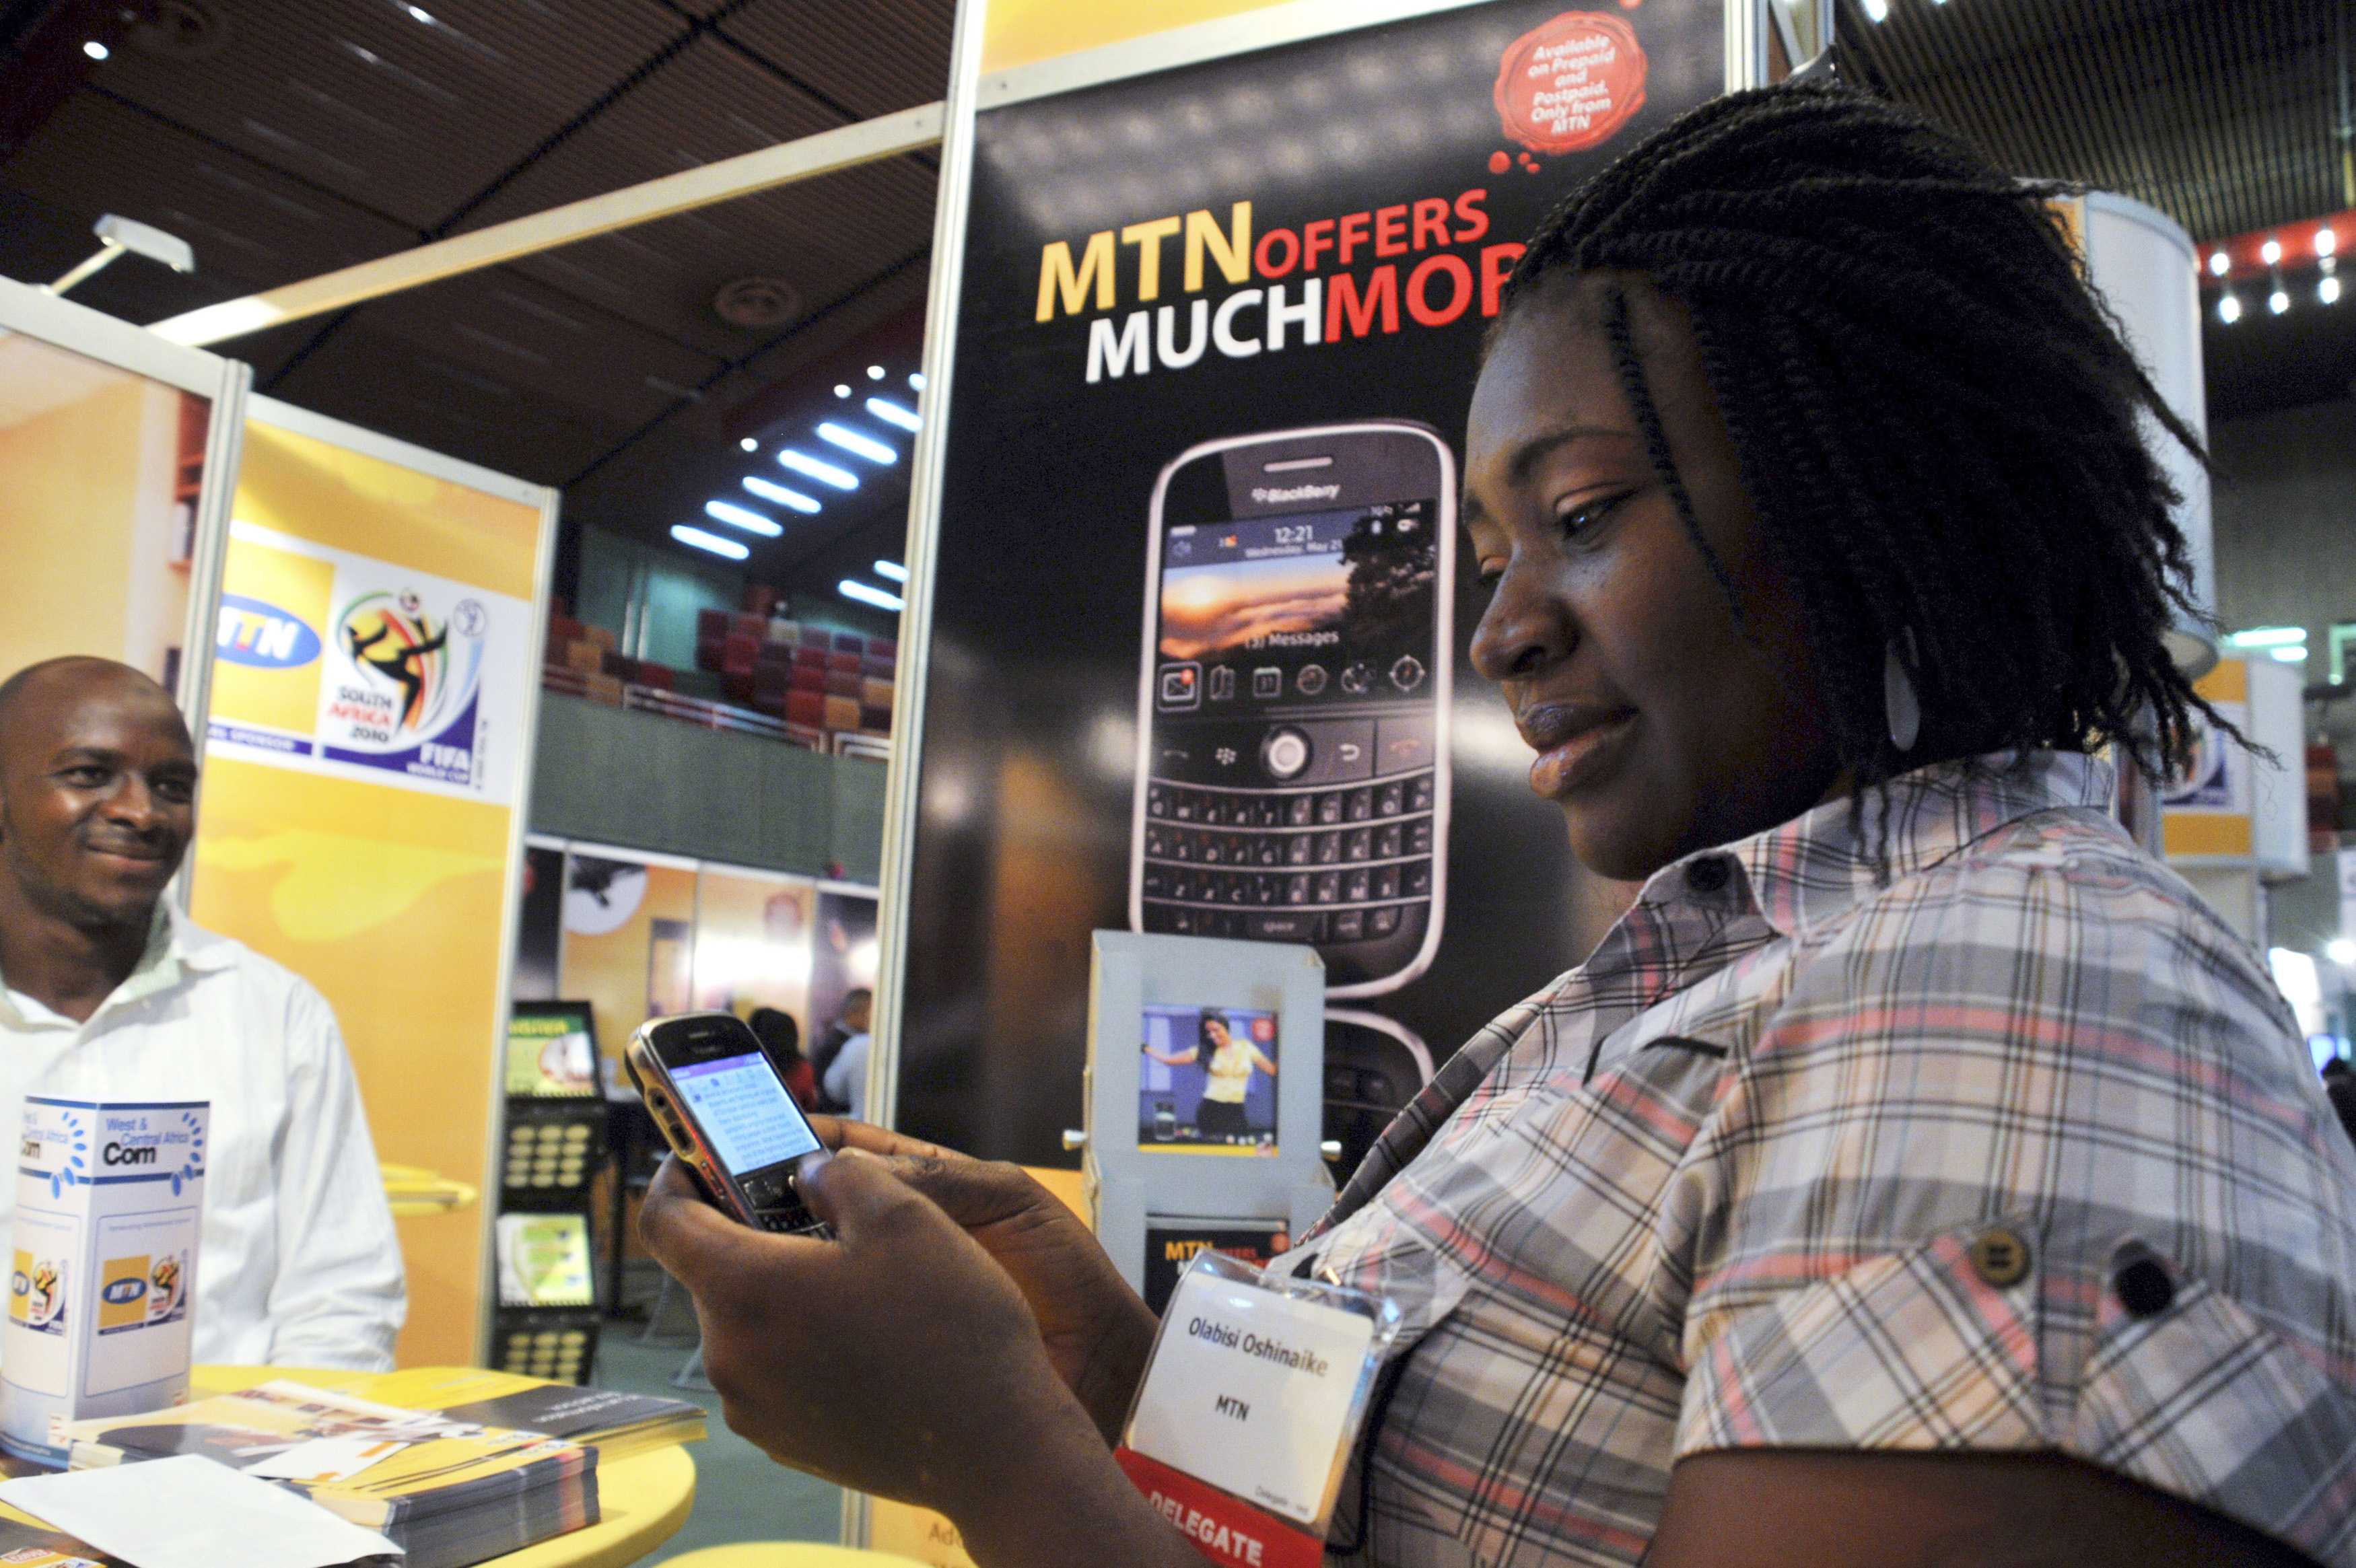 A delegate checks a blackberry handset at an exhibition stand during the West & Central Africa Com conference in Nigeria's capital Abuja, June 18, 2009. Nigeria's mobile subscriber base is growing at around the fastest pace since the advent of GSM technology at the start of the decade, but average revenue per user is tailing off, industry analysts said on Wednesday.   REUTERS/Afolabi Sotunde (NIGERIA BUSINESS SCI TECH) - RTR24SIM